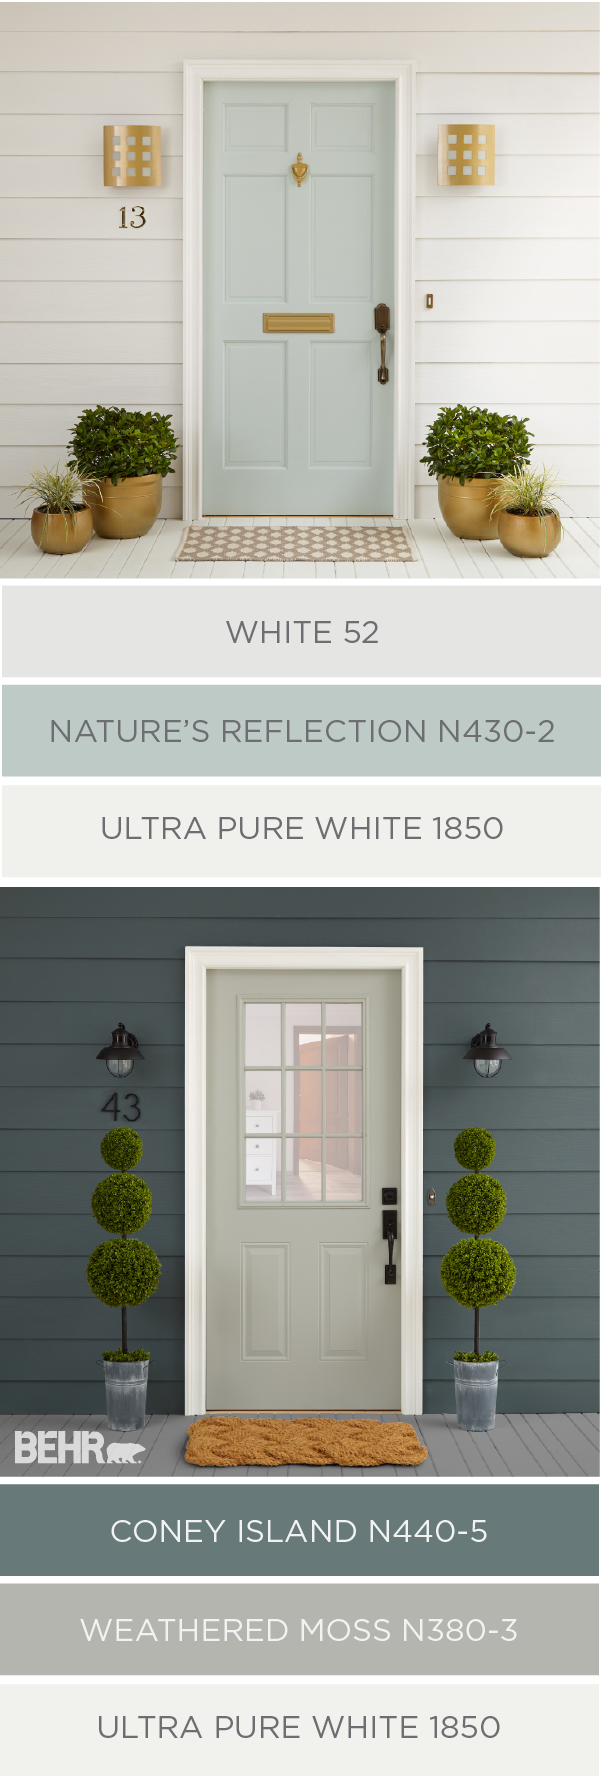 Cleaning up the exterior of your home in time for the holiday's doesn't have to be hard. You can raise your house's curb appeal in just a few easy steps. These two color palettes from BEHR Paint use traditional, stylish colors to completely change the look of this home. Try repainting your front door and adding some boxwood plants to give your house a fresh new feel.